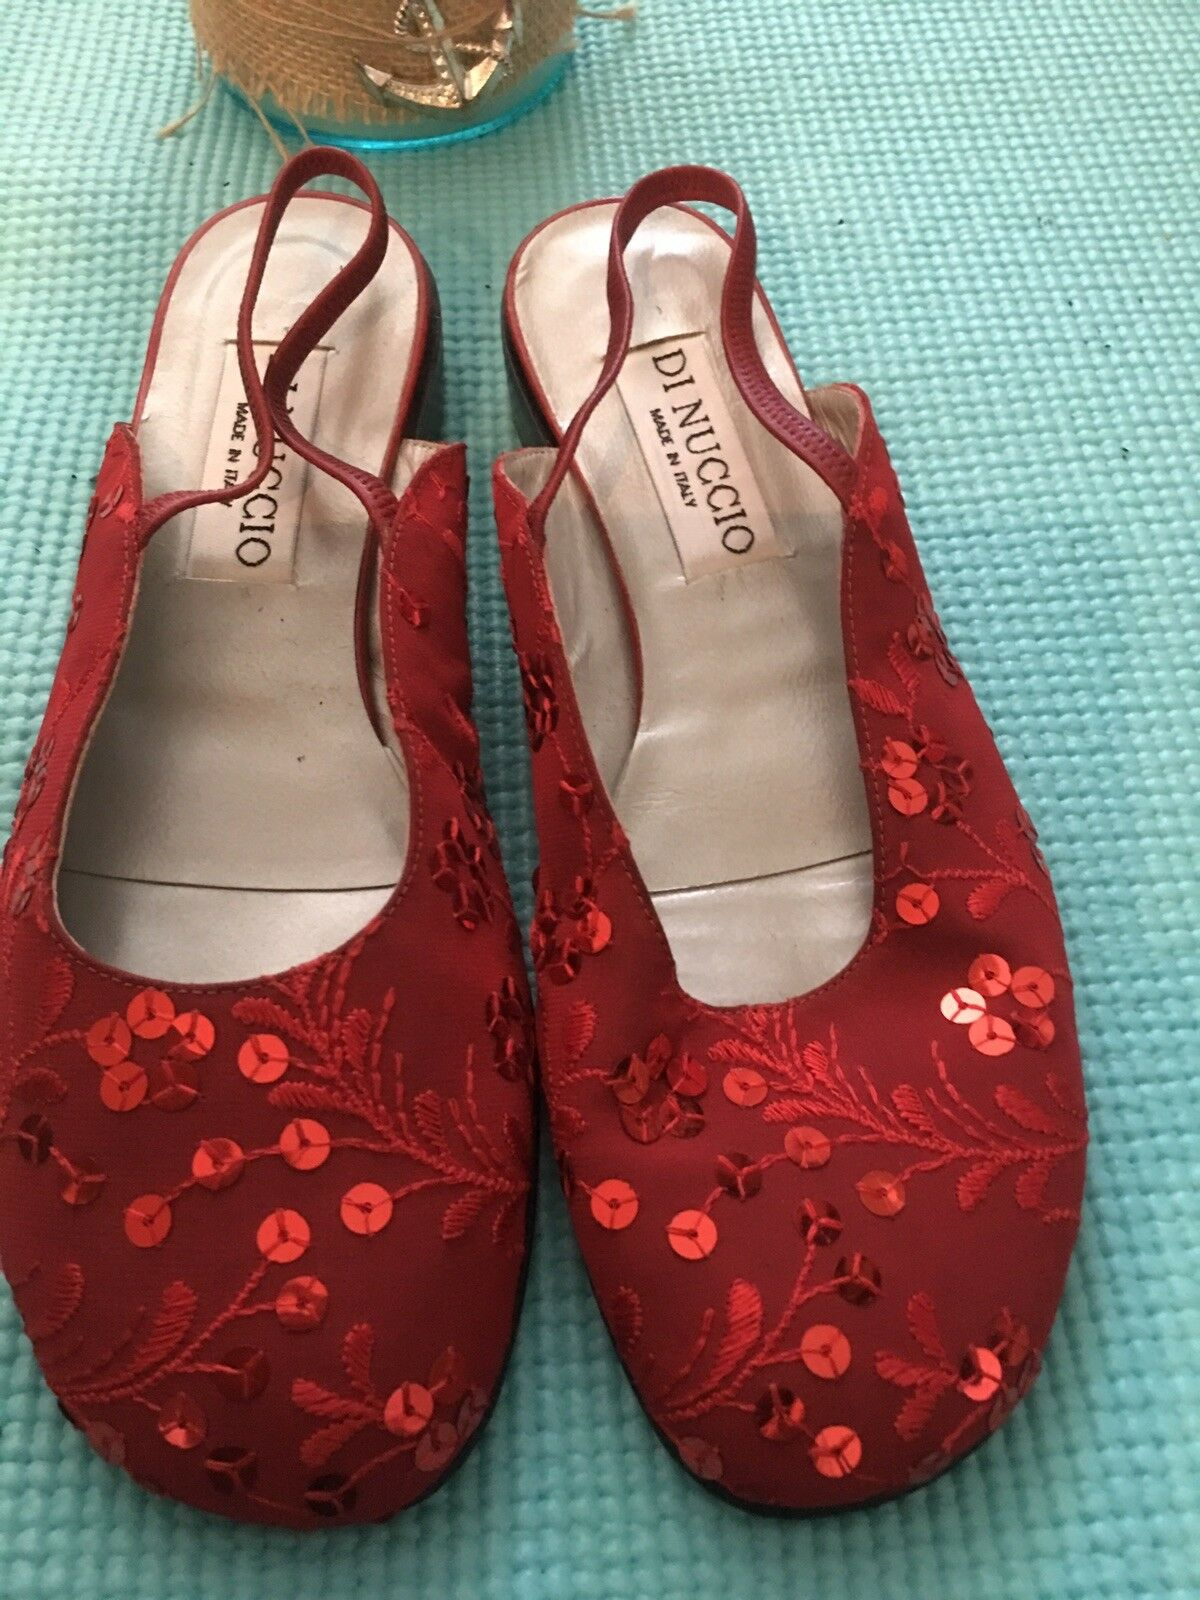 Nouveau Femmes Dinuccio rouge Sling Back flats. taille moyenne 7 ou 37 Med. Made in